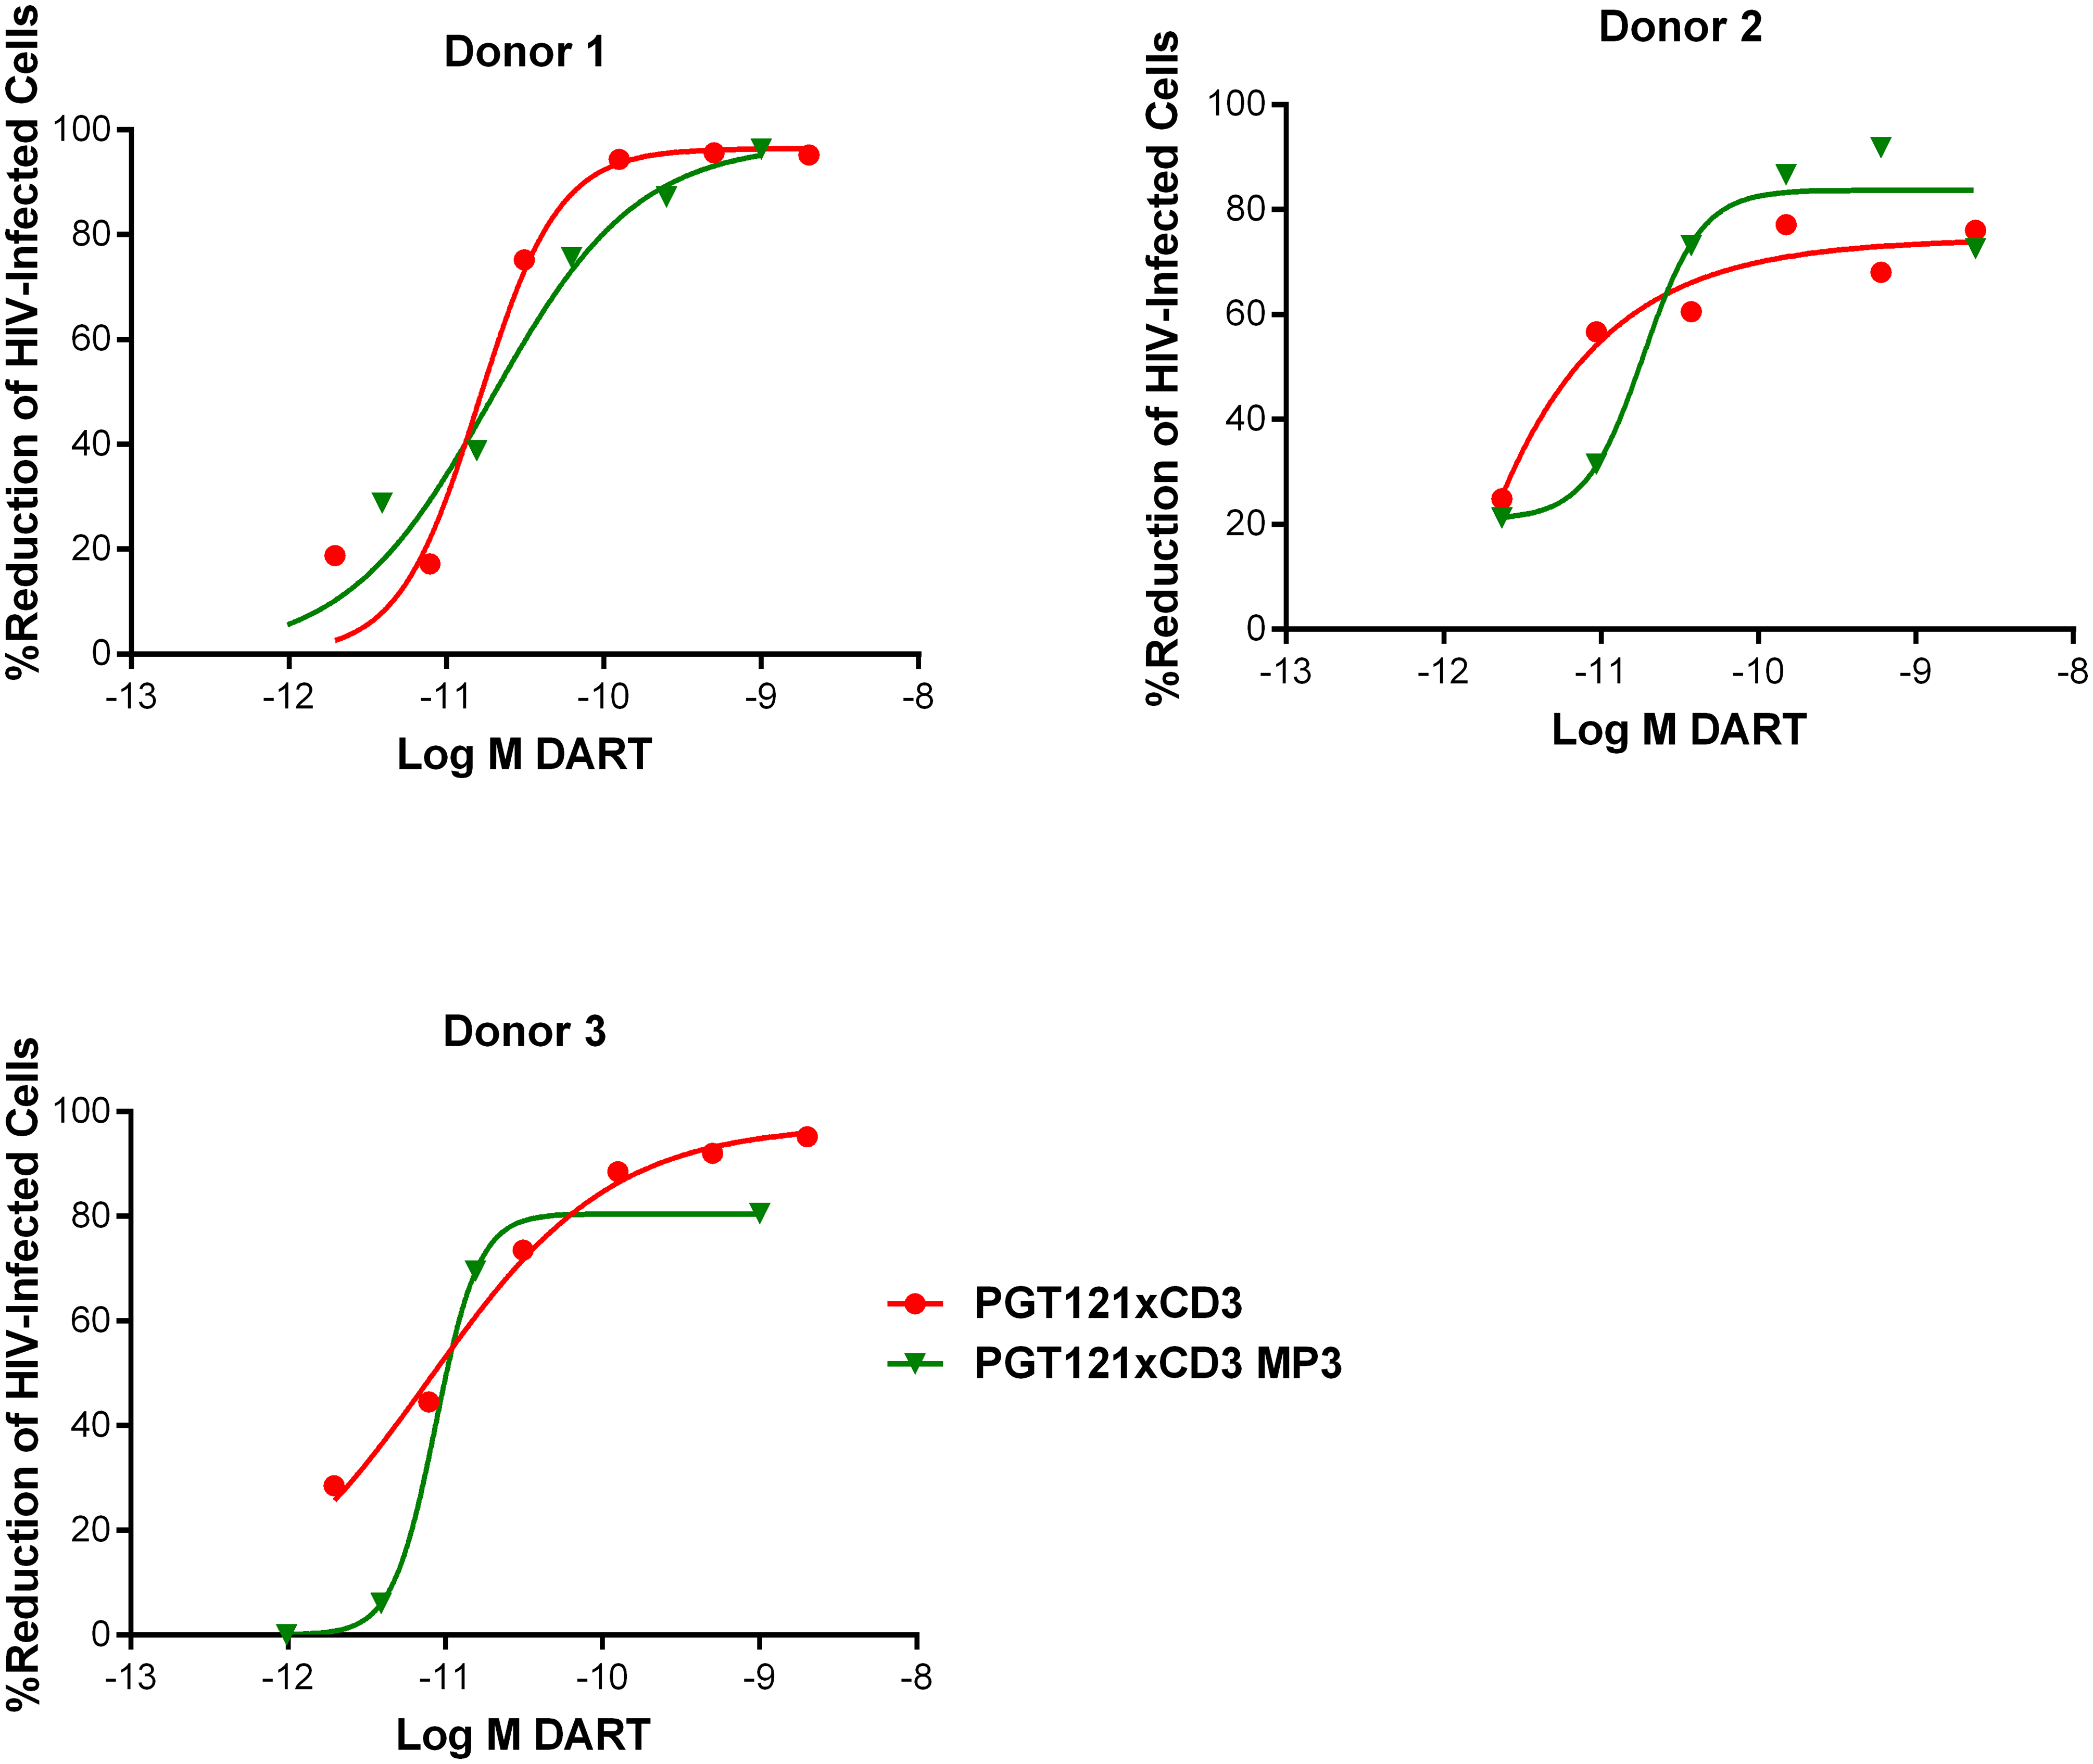 HIVxCD3 DARTs in MP3 format and basic format induce the CD8 T cell-dependent killing of HIV-Infected CD4 T cells in vitro with comparable potency.